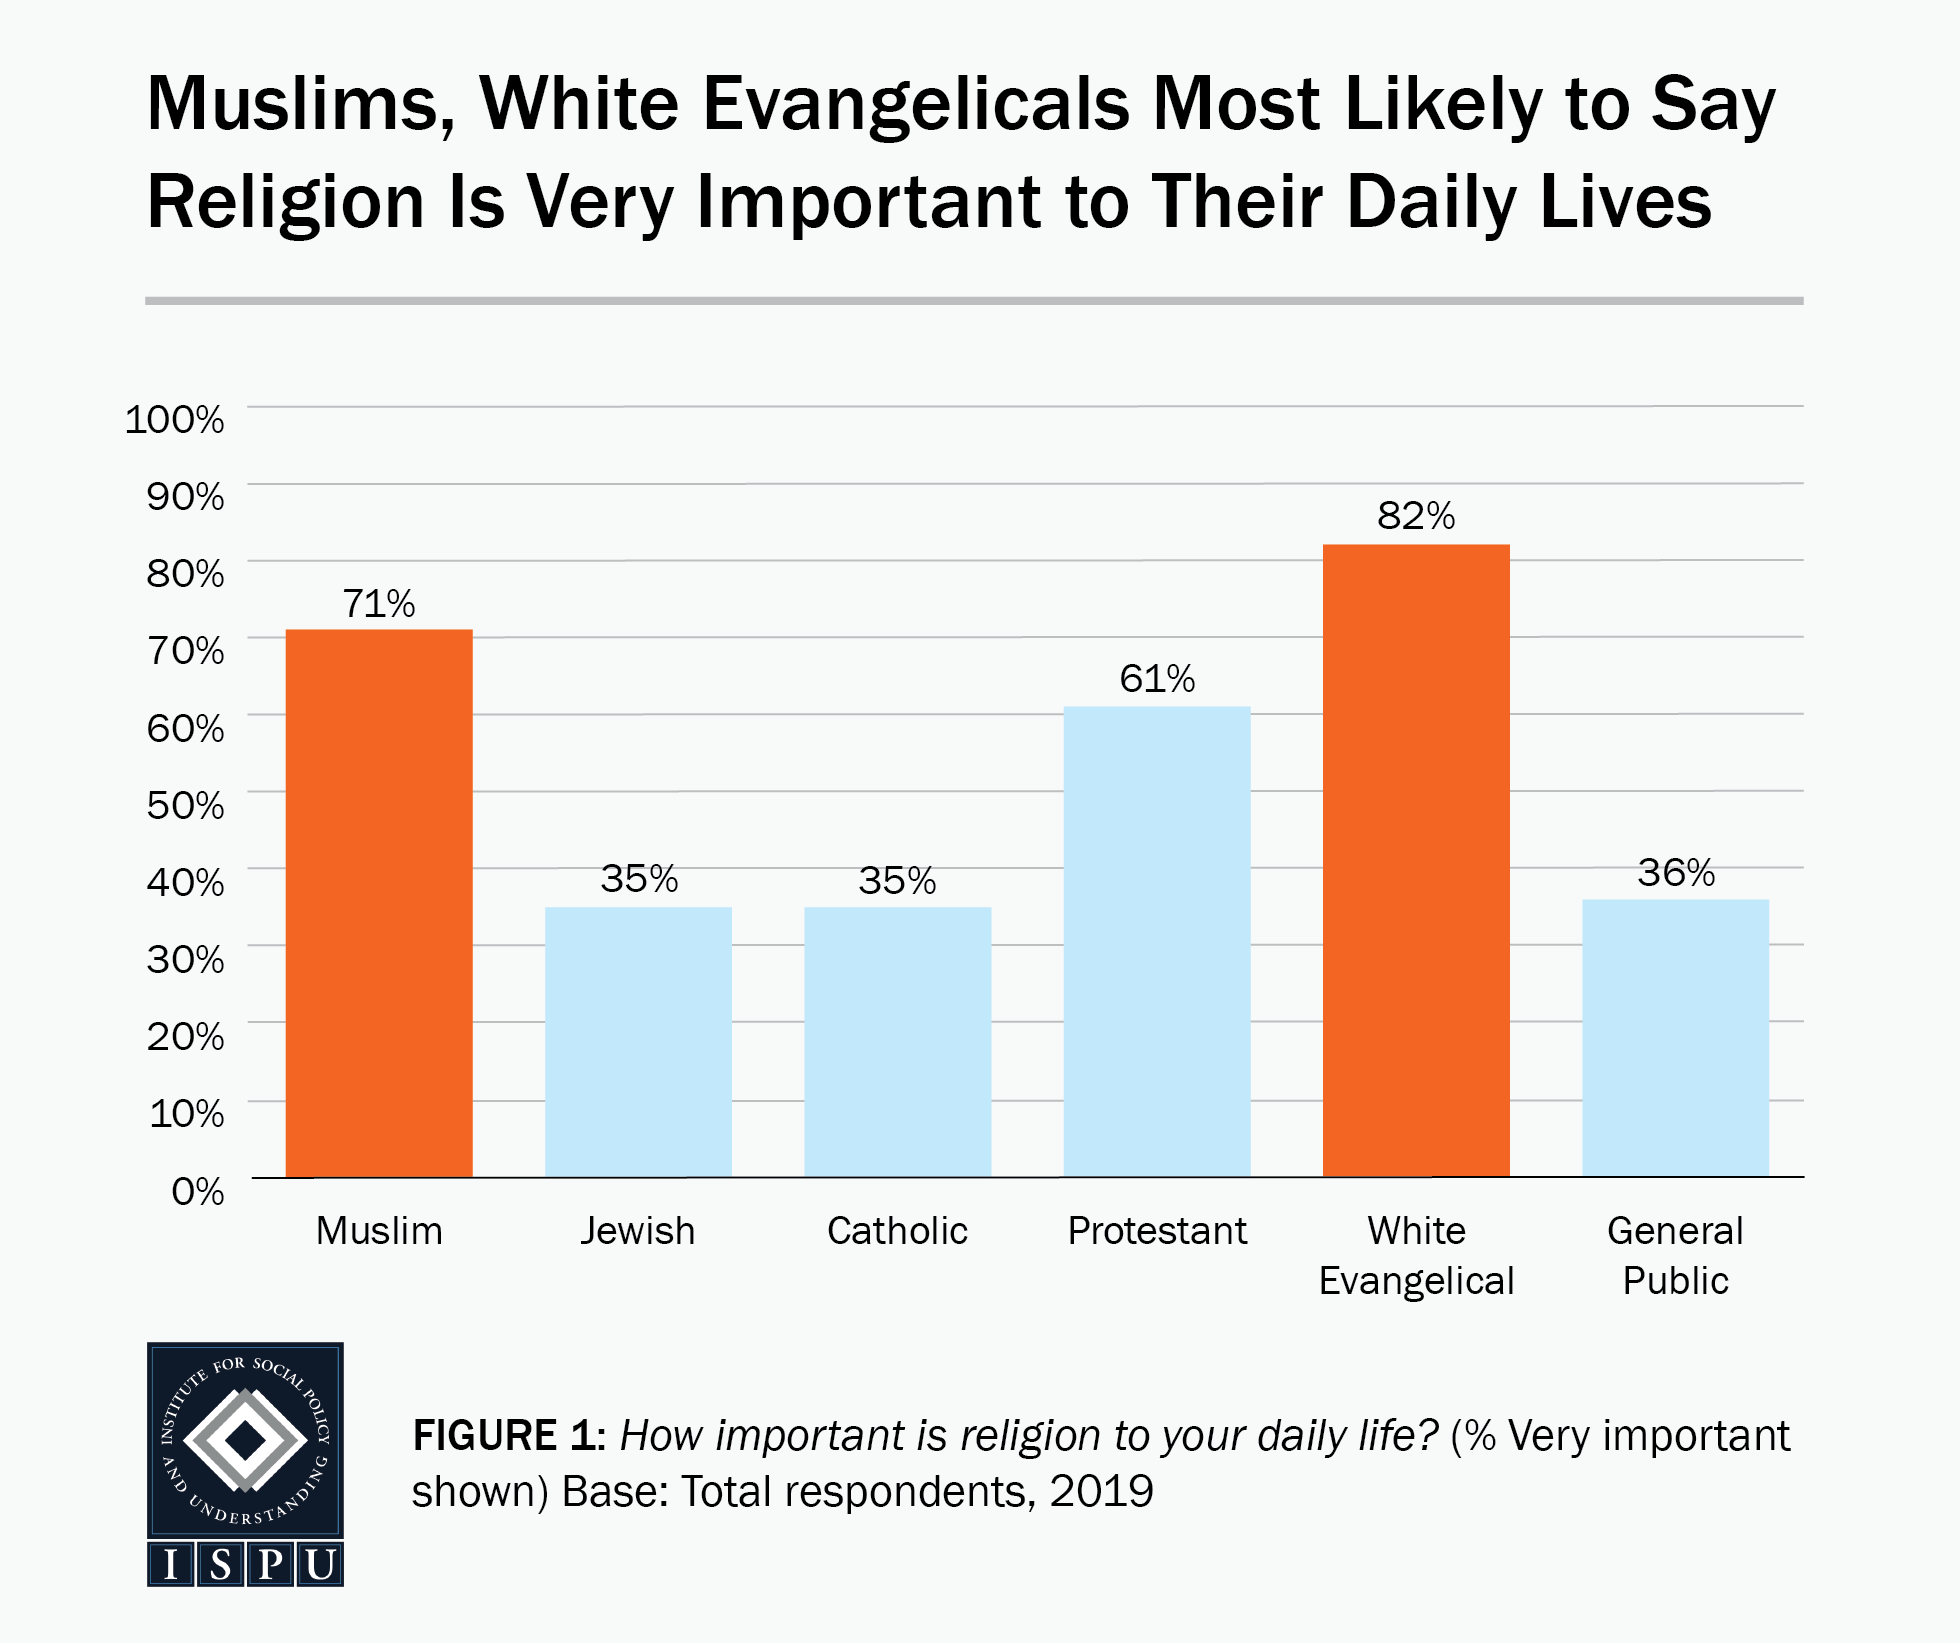 Figure 1: A bar graph showing that Muslims (71%) and white Evangelicals (82%) are the most likely faith groups to say religion is very important to their daily lives